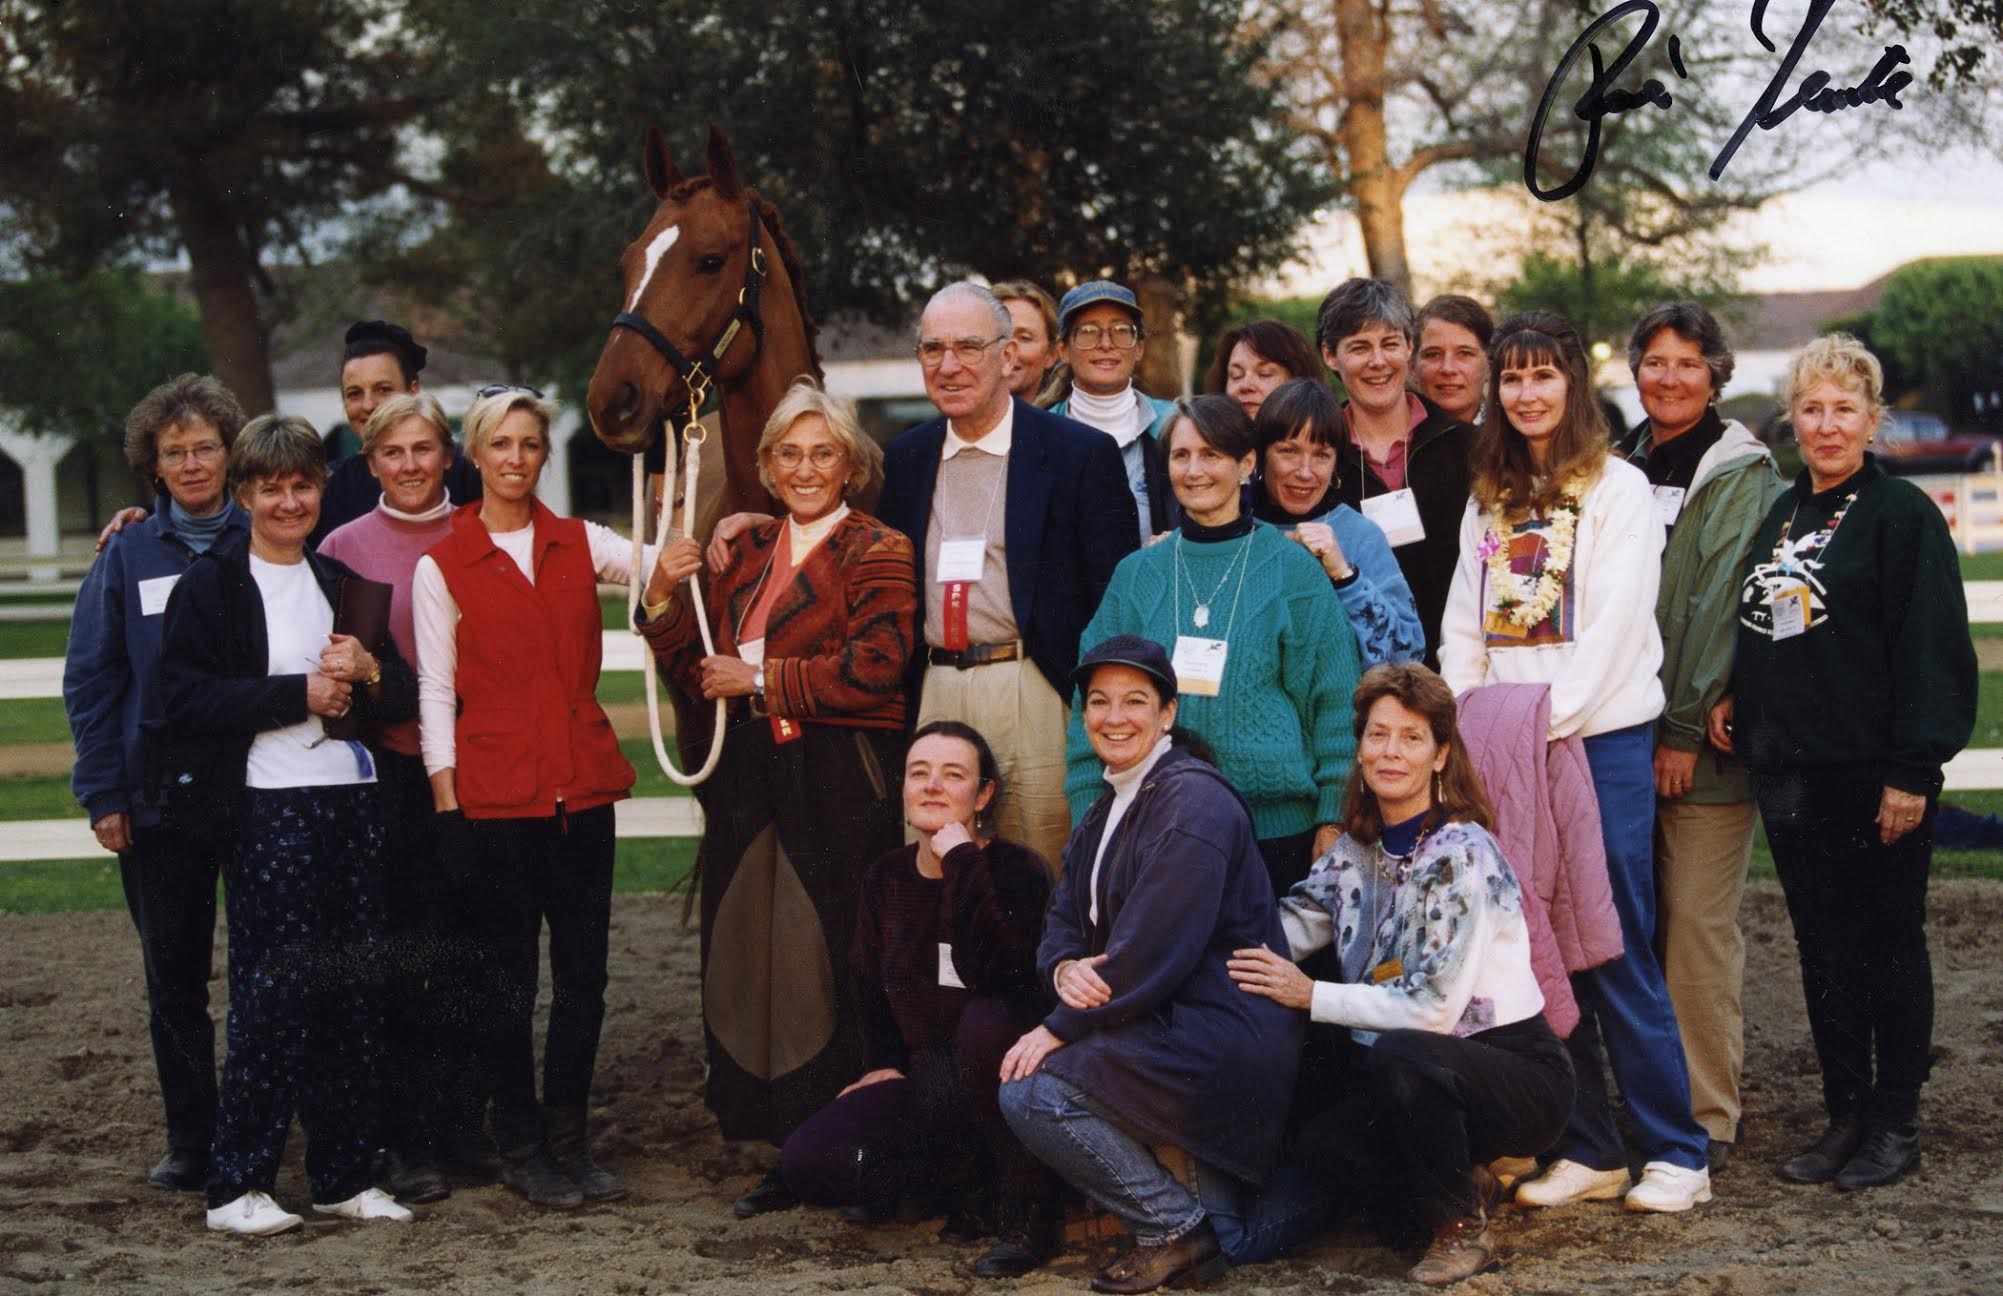 Tellington-Jones and Dr. Klimke with the clinic in 1999. Courtesy of Linda Tellington-Jones.